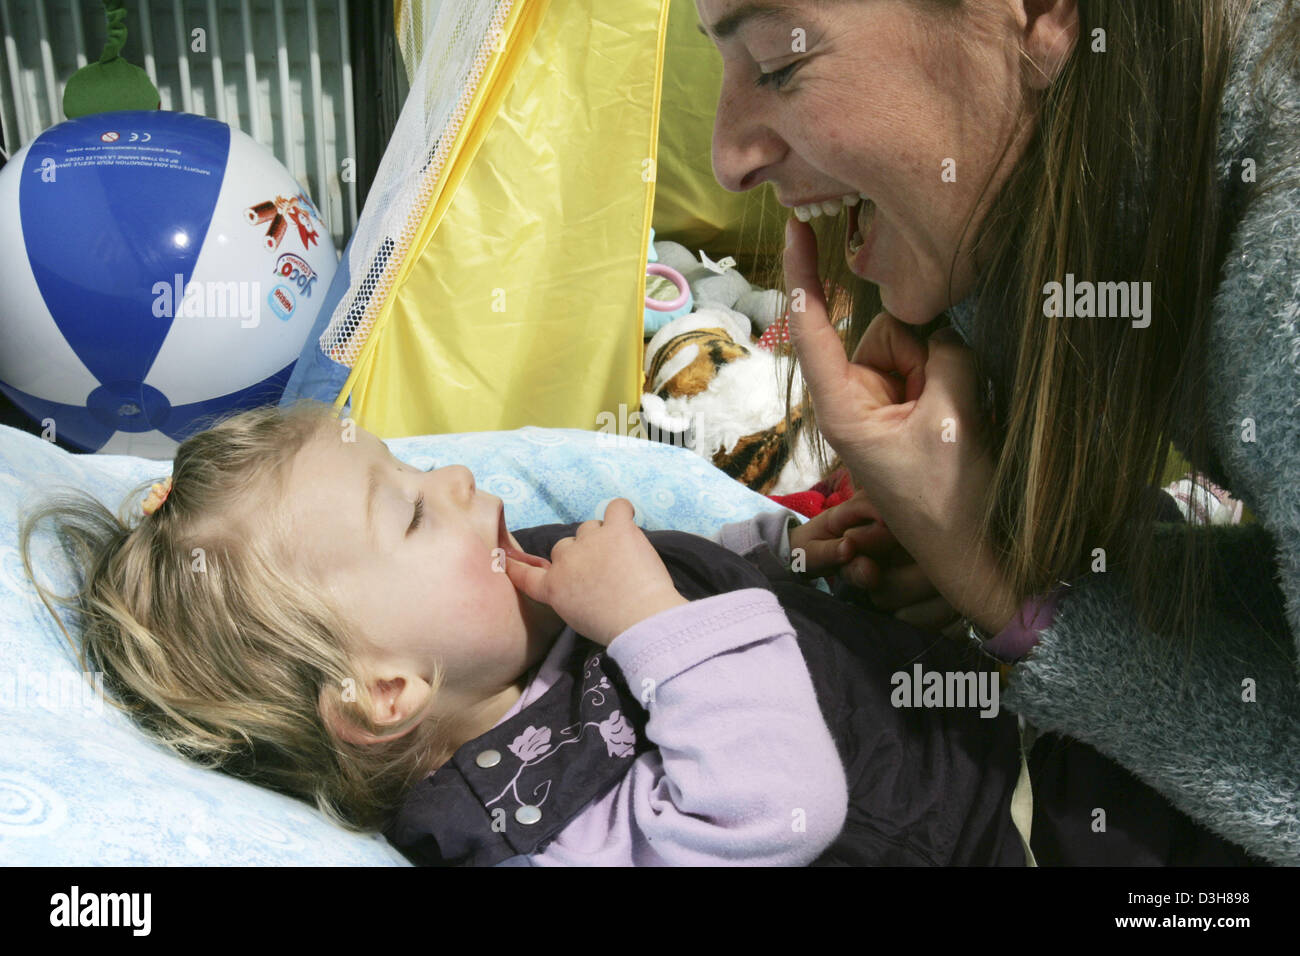 MOTHER & INFANT - Stock Image